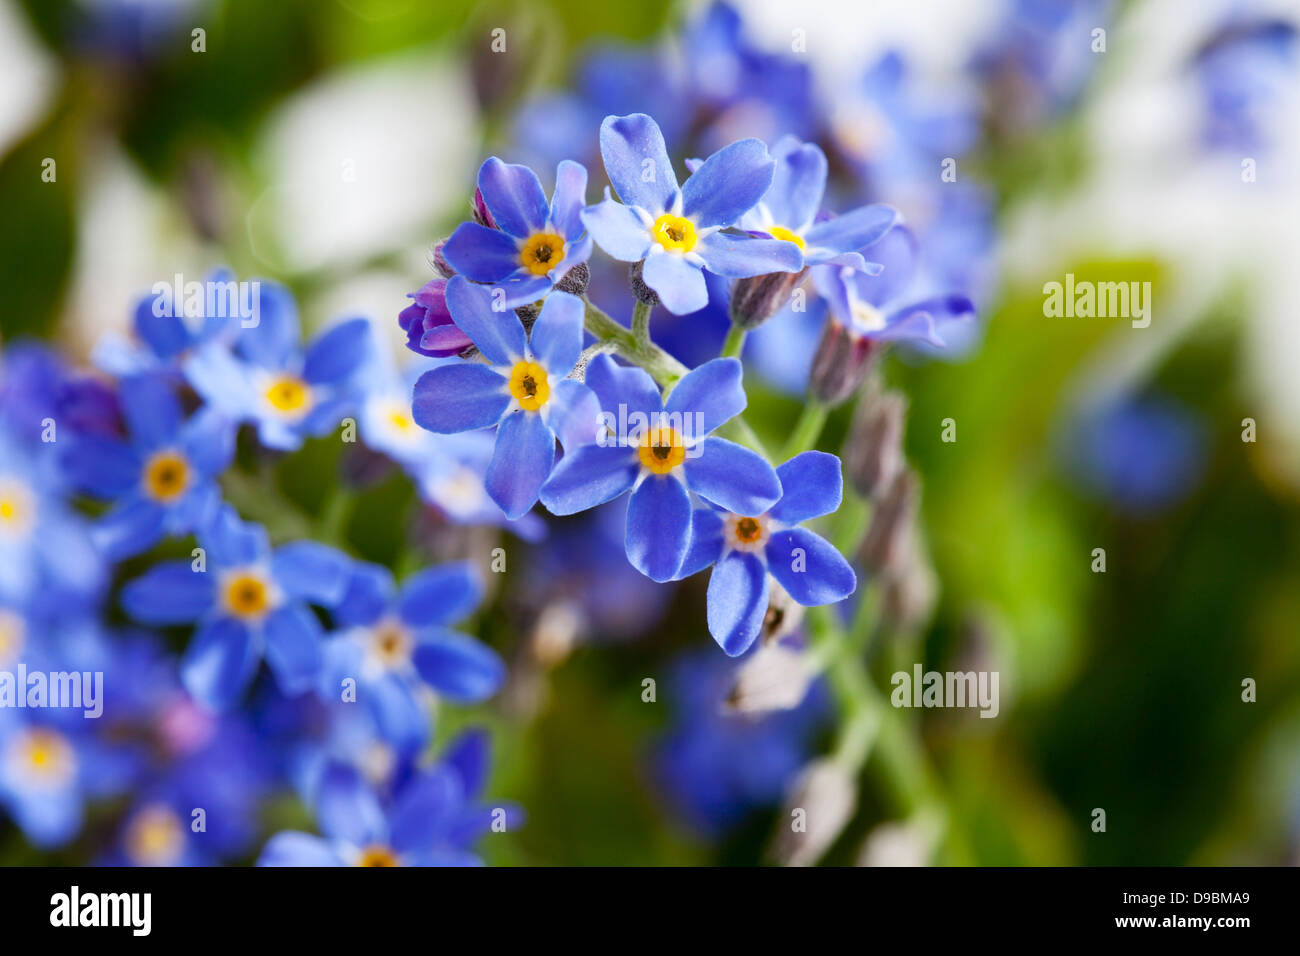 Forget me not flowers, close up Stock Photo